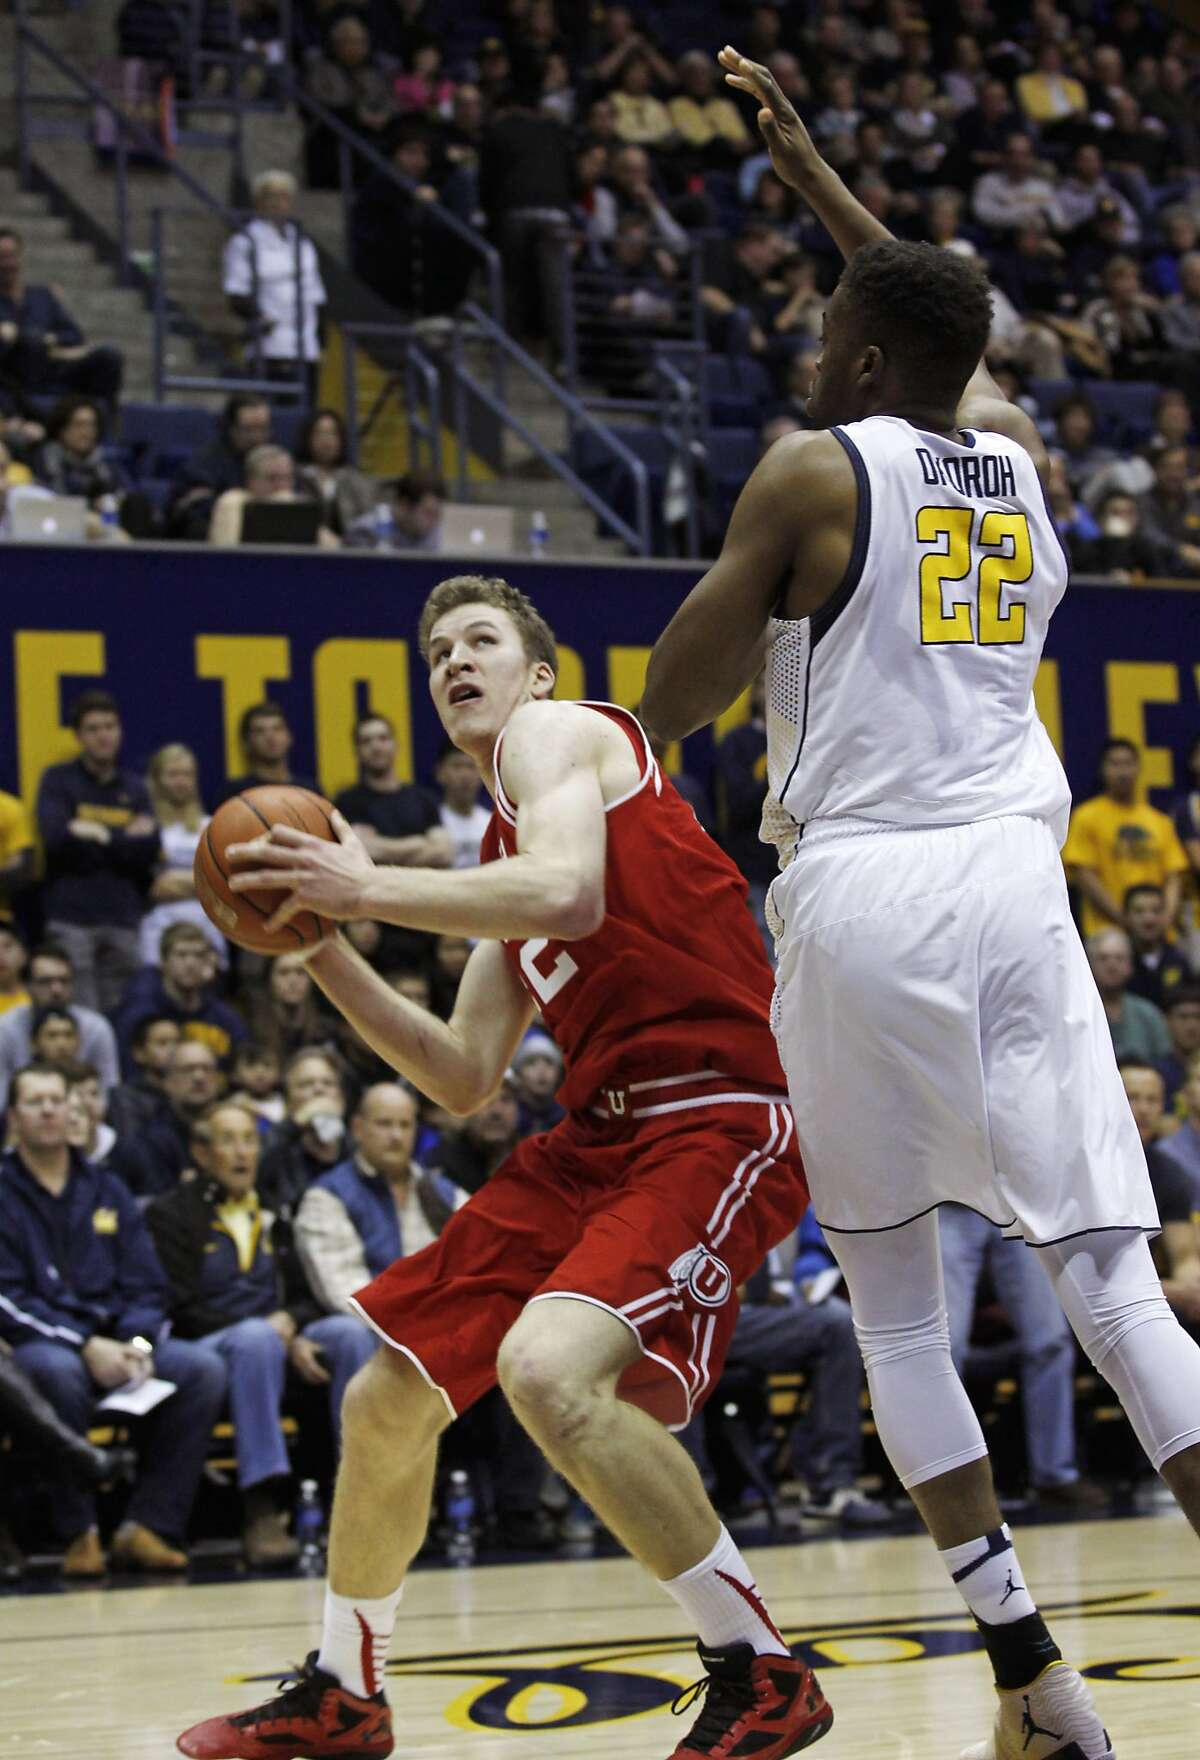 Utahs' Jakob Poeltl looks to shoot as Californias' Kingsley Okoroh defends during the first half of an NCAA basketball game, Sunday, Jan. 3, 2016, in Berkeley, Calif.